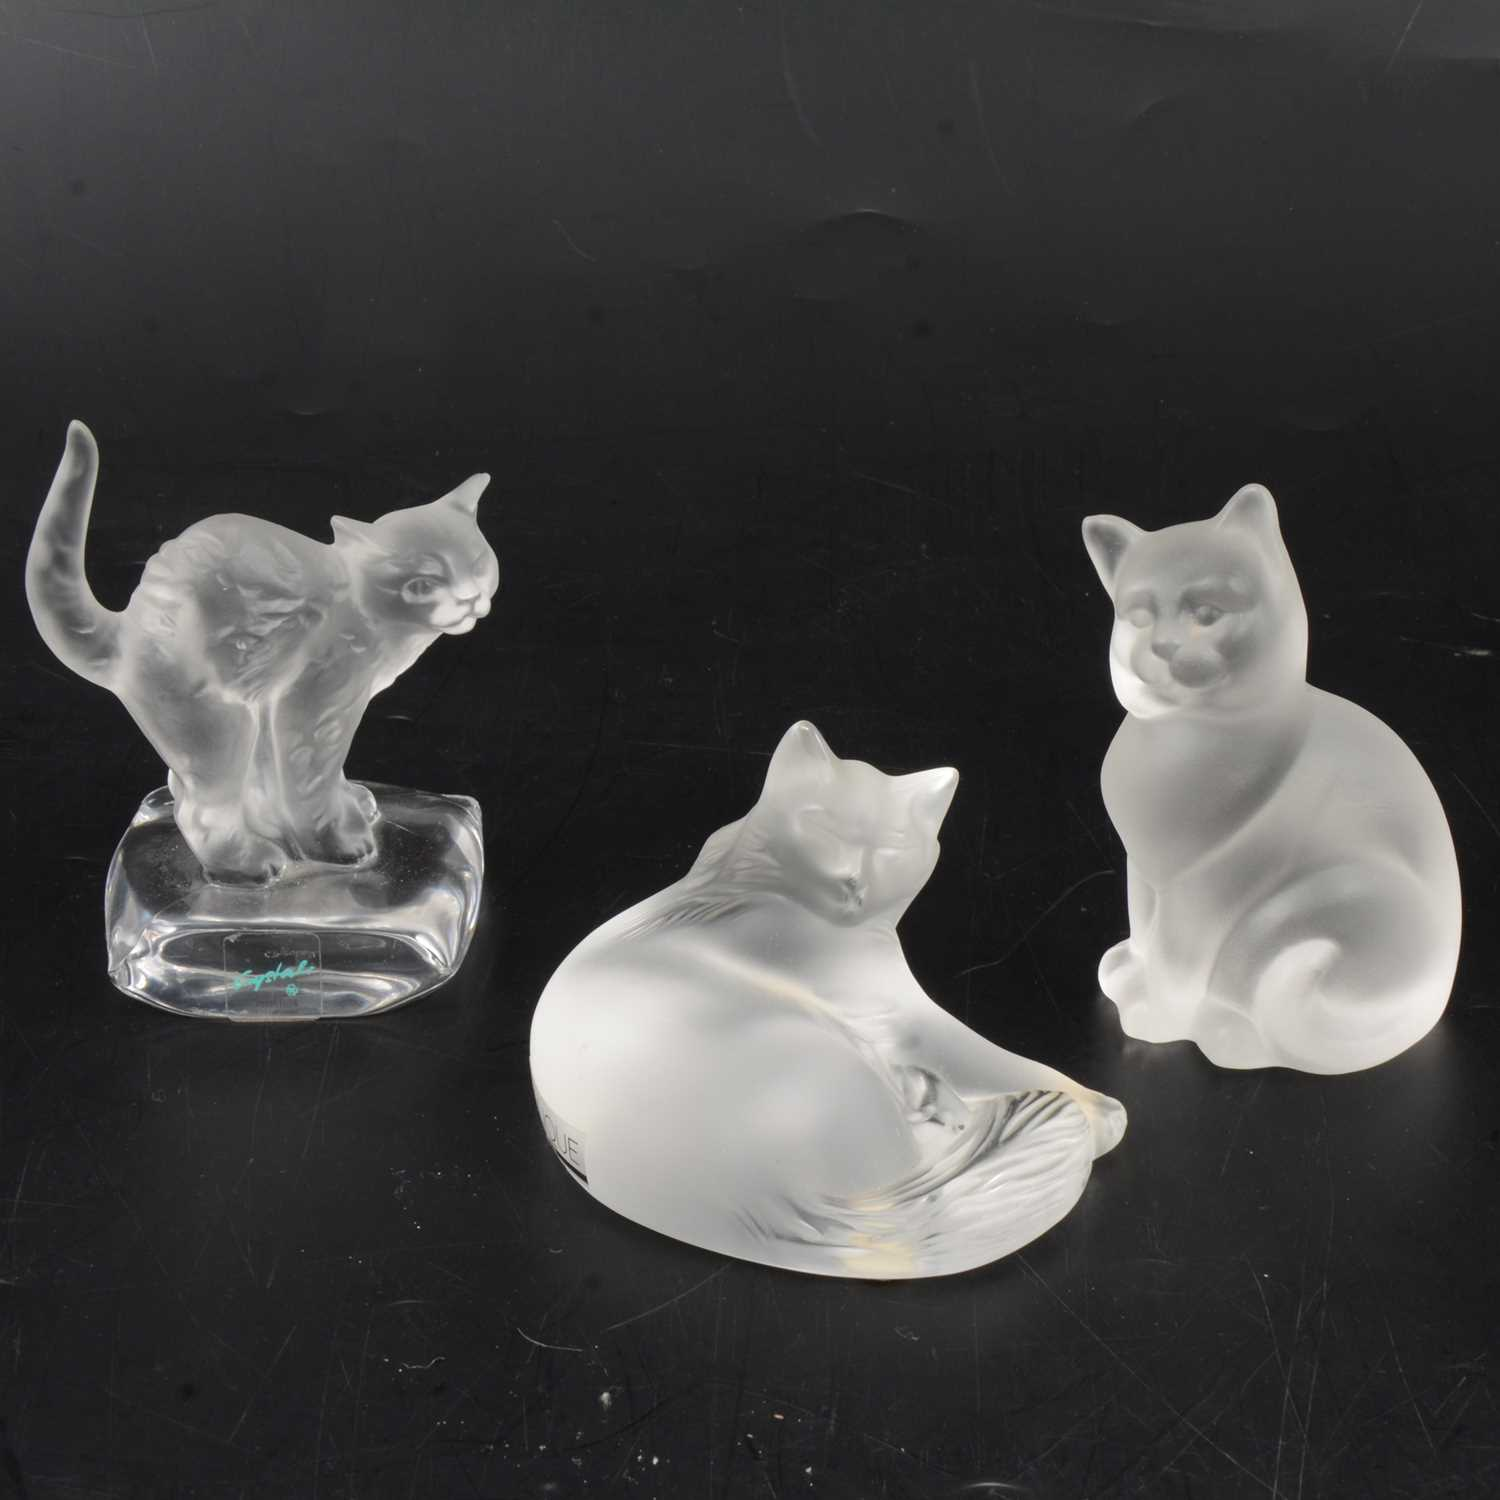 Lot 15 - Lalique Crystal, Happy Cat, a frosted glass figure, and two other cat figures